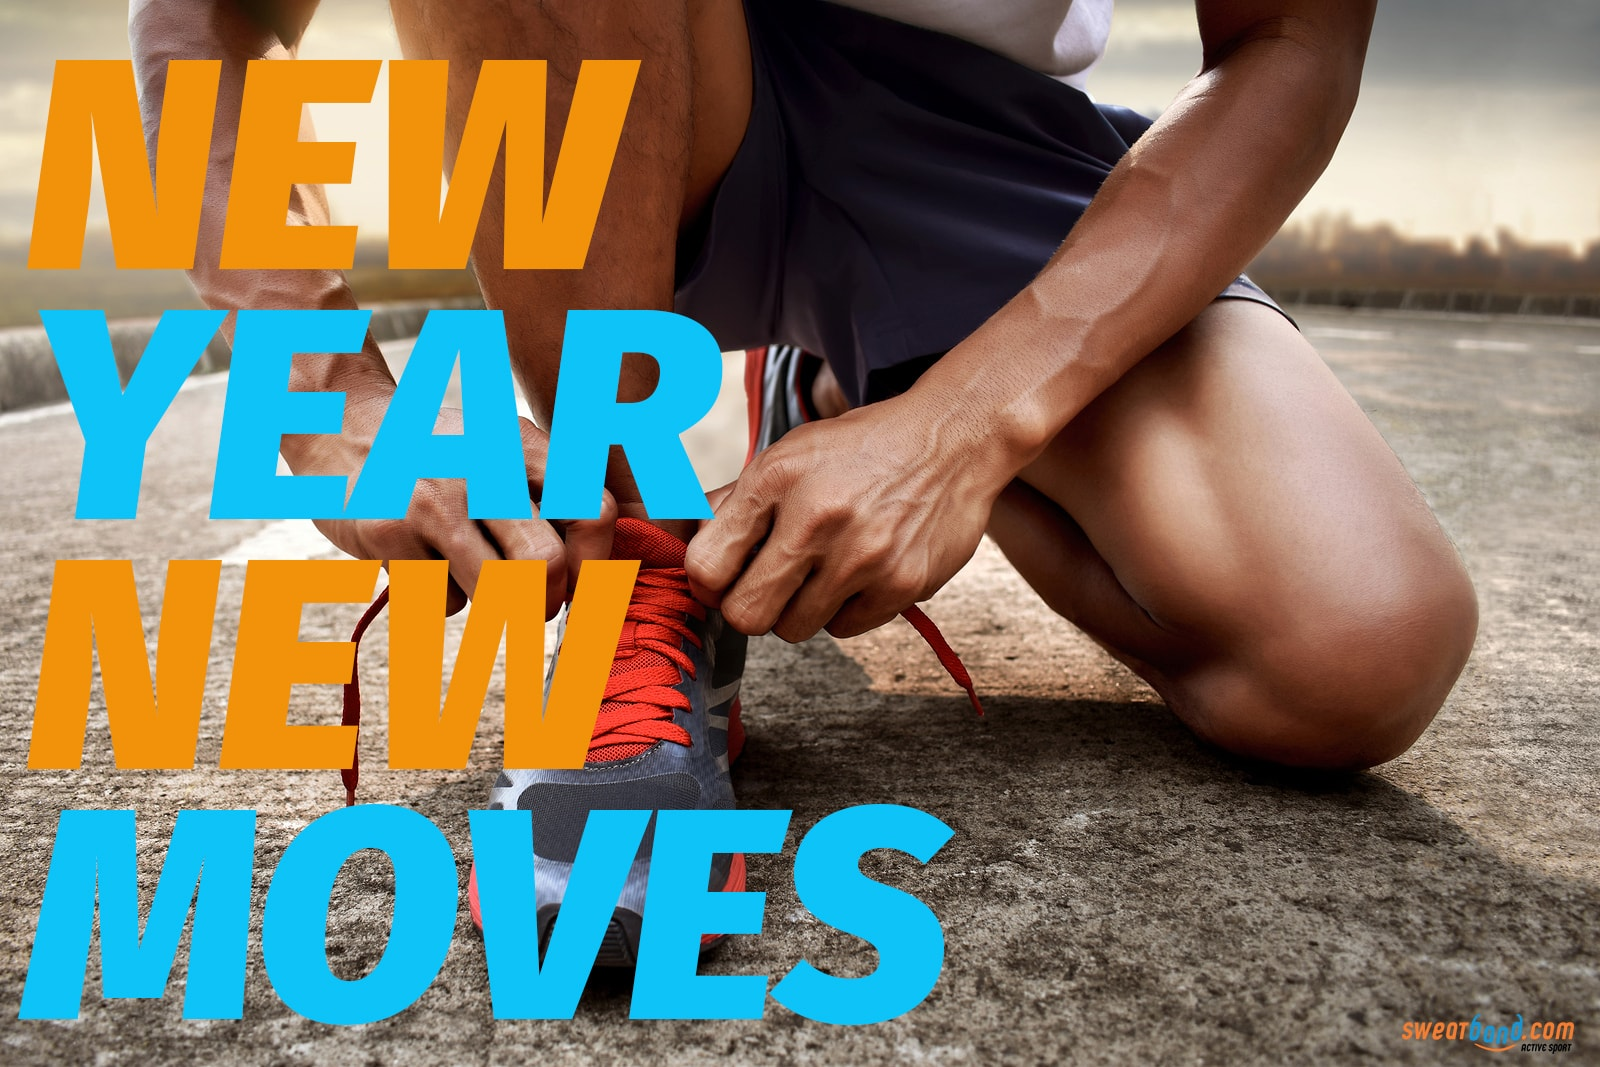 Try new moves for the new year by taking up a new sport or fitness activity